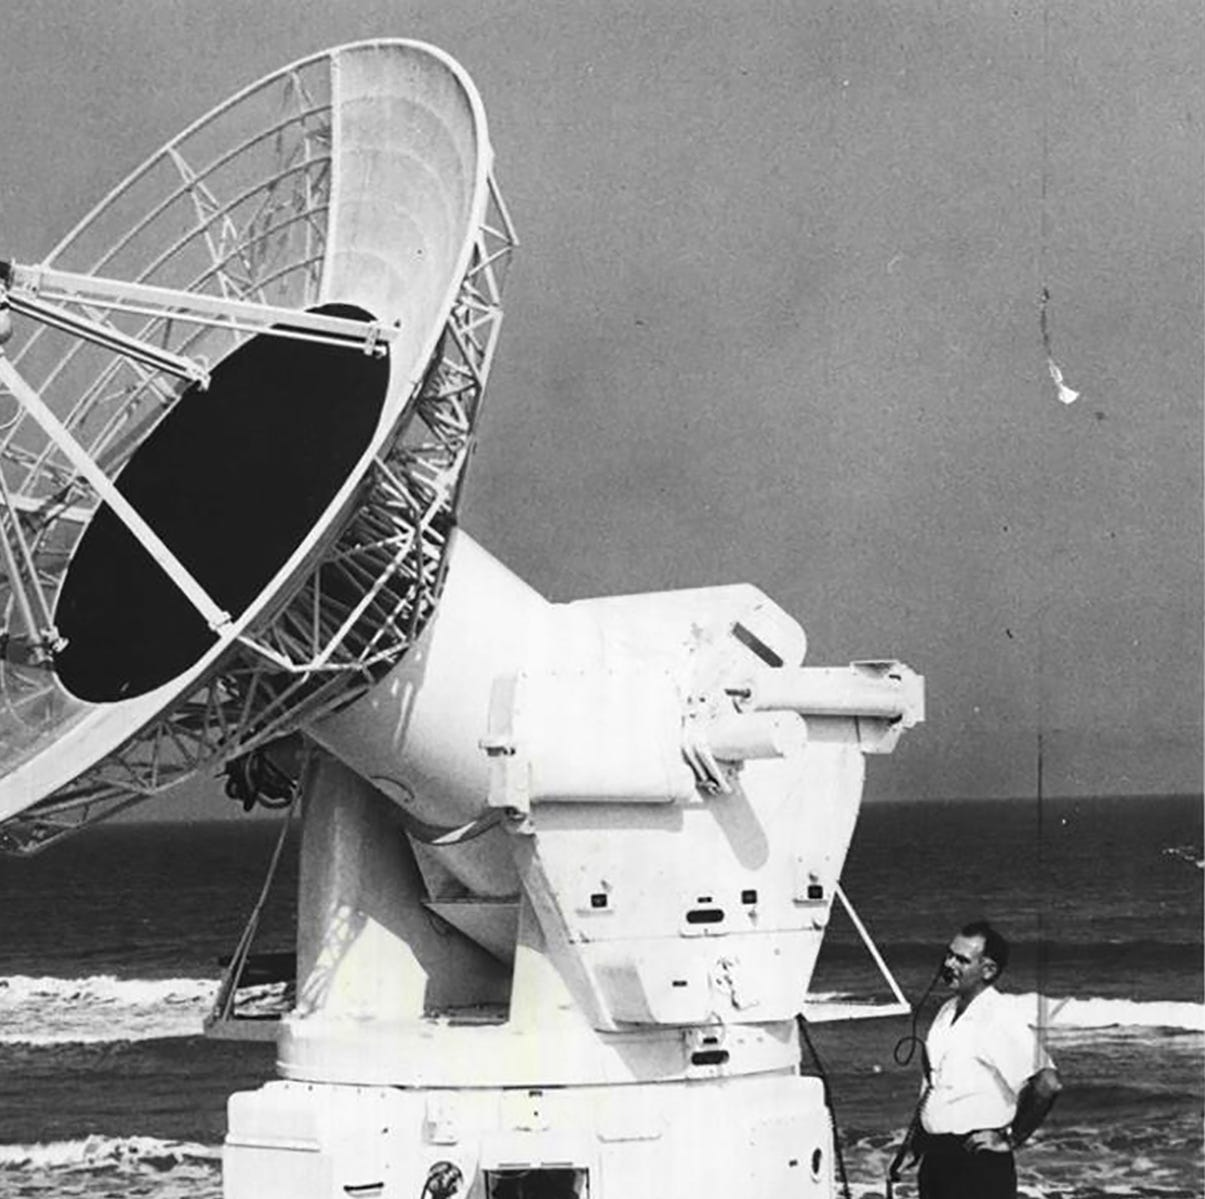 Under the radar: Marco's days as a missile tracking site remembered